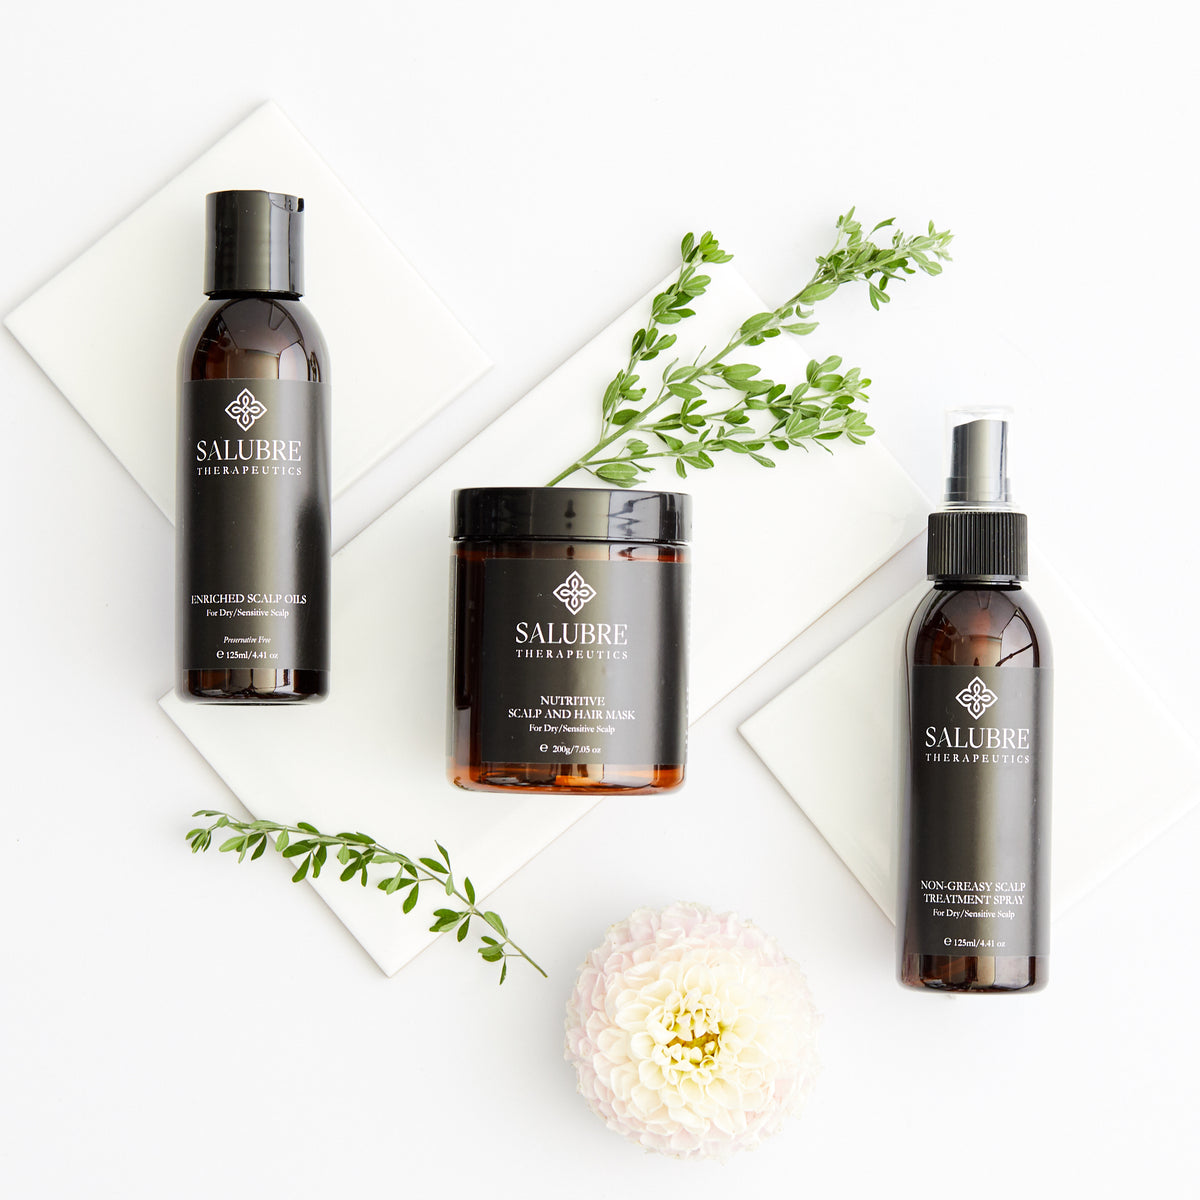 Enriched Scalp Oils